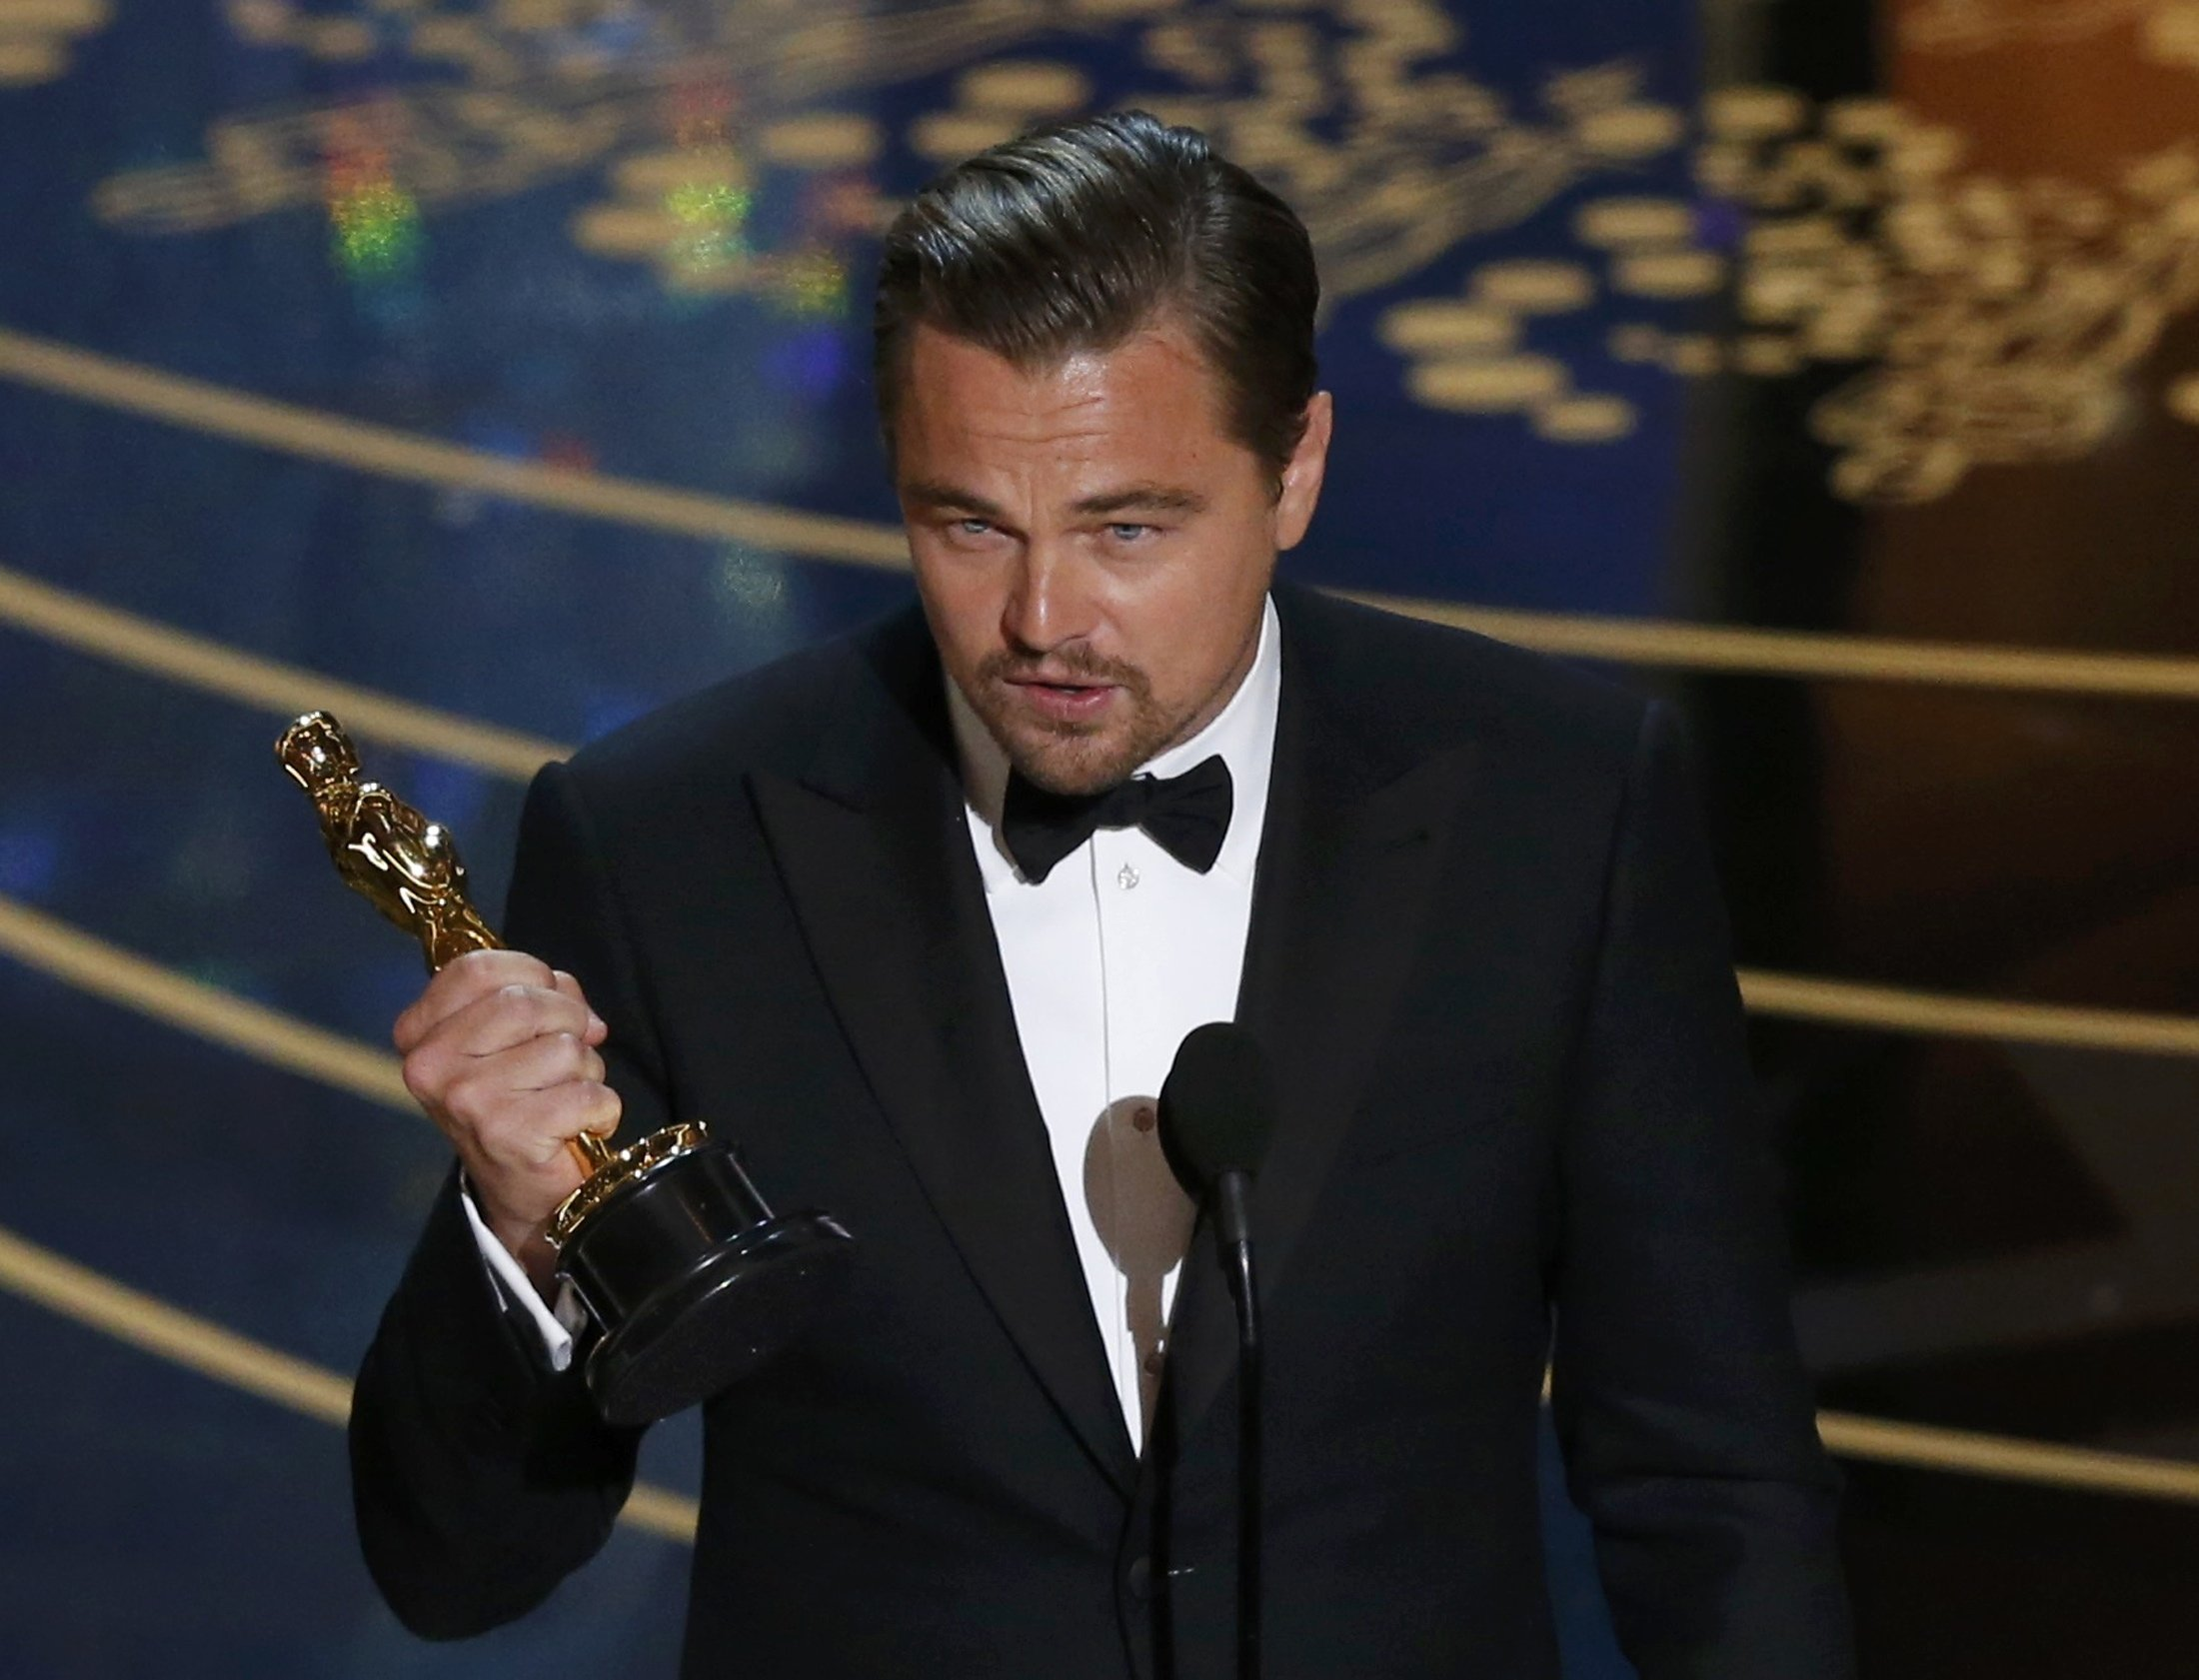 """Leonardo DiCaprio accepts the Oscar for Best Actor for the movie """"The Revenant"""" at the 88th Academy Awards in Hollywood, California February 28, 2016. REUTERS/Mario Anzuoni"""